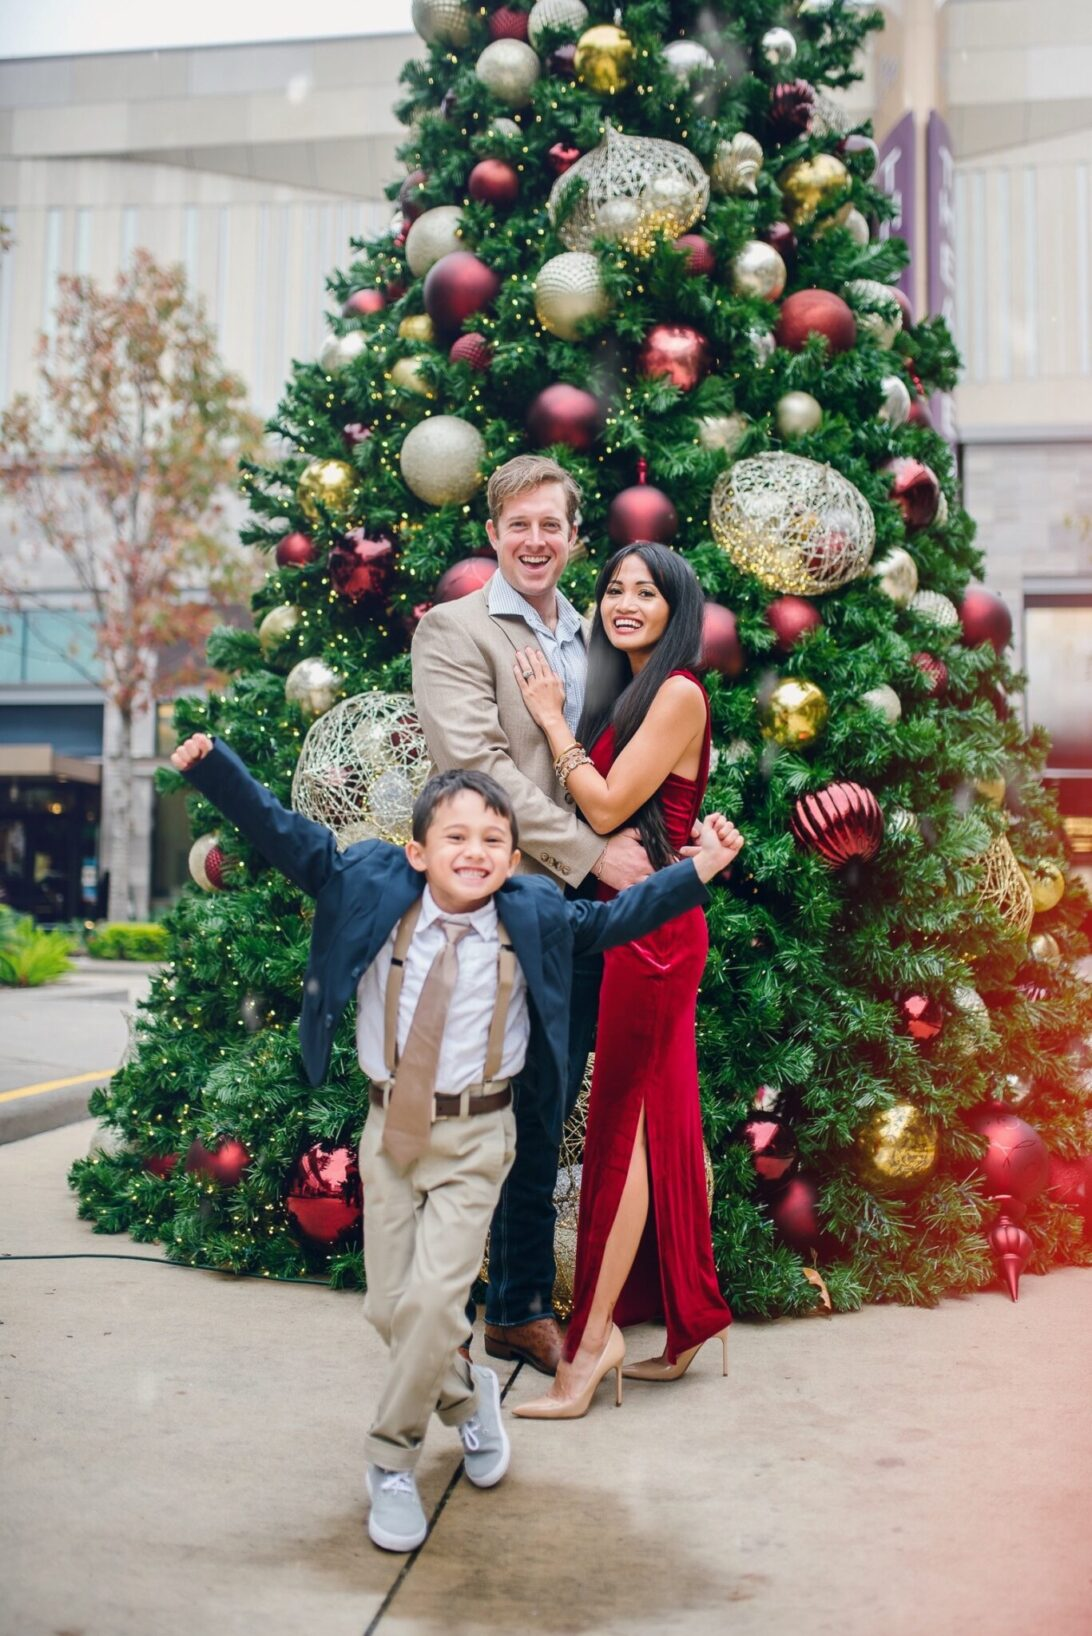 Christmas family photos, red velvet dress, Merry Christmas